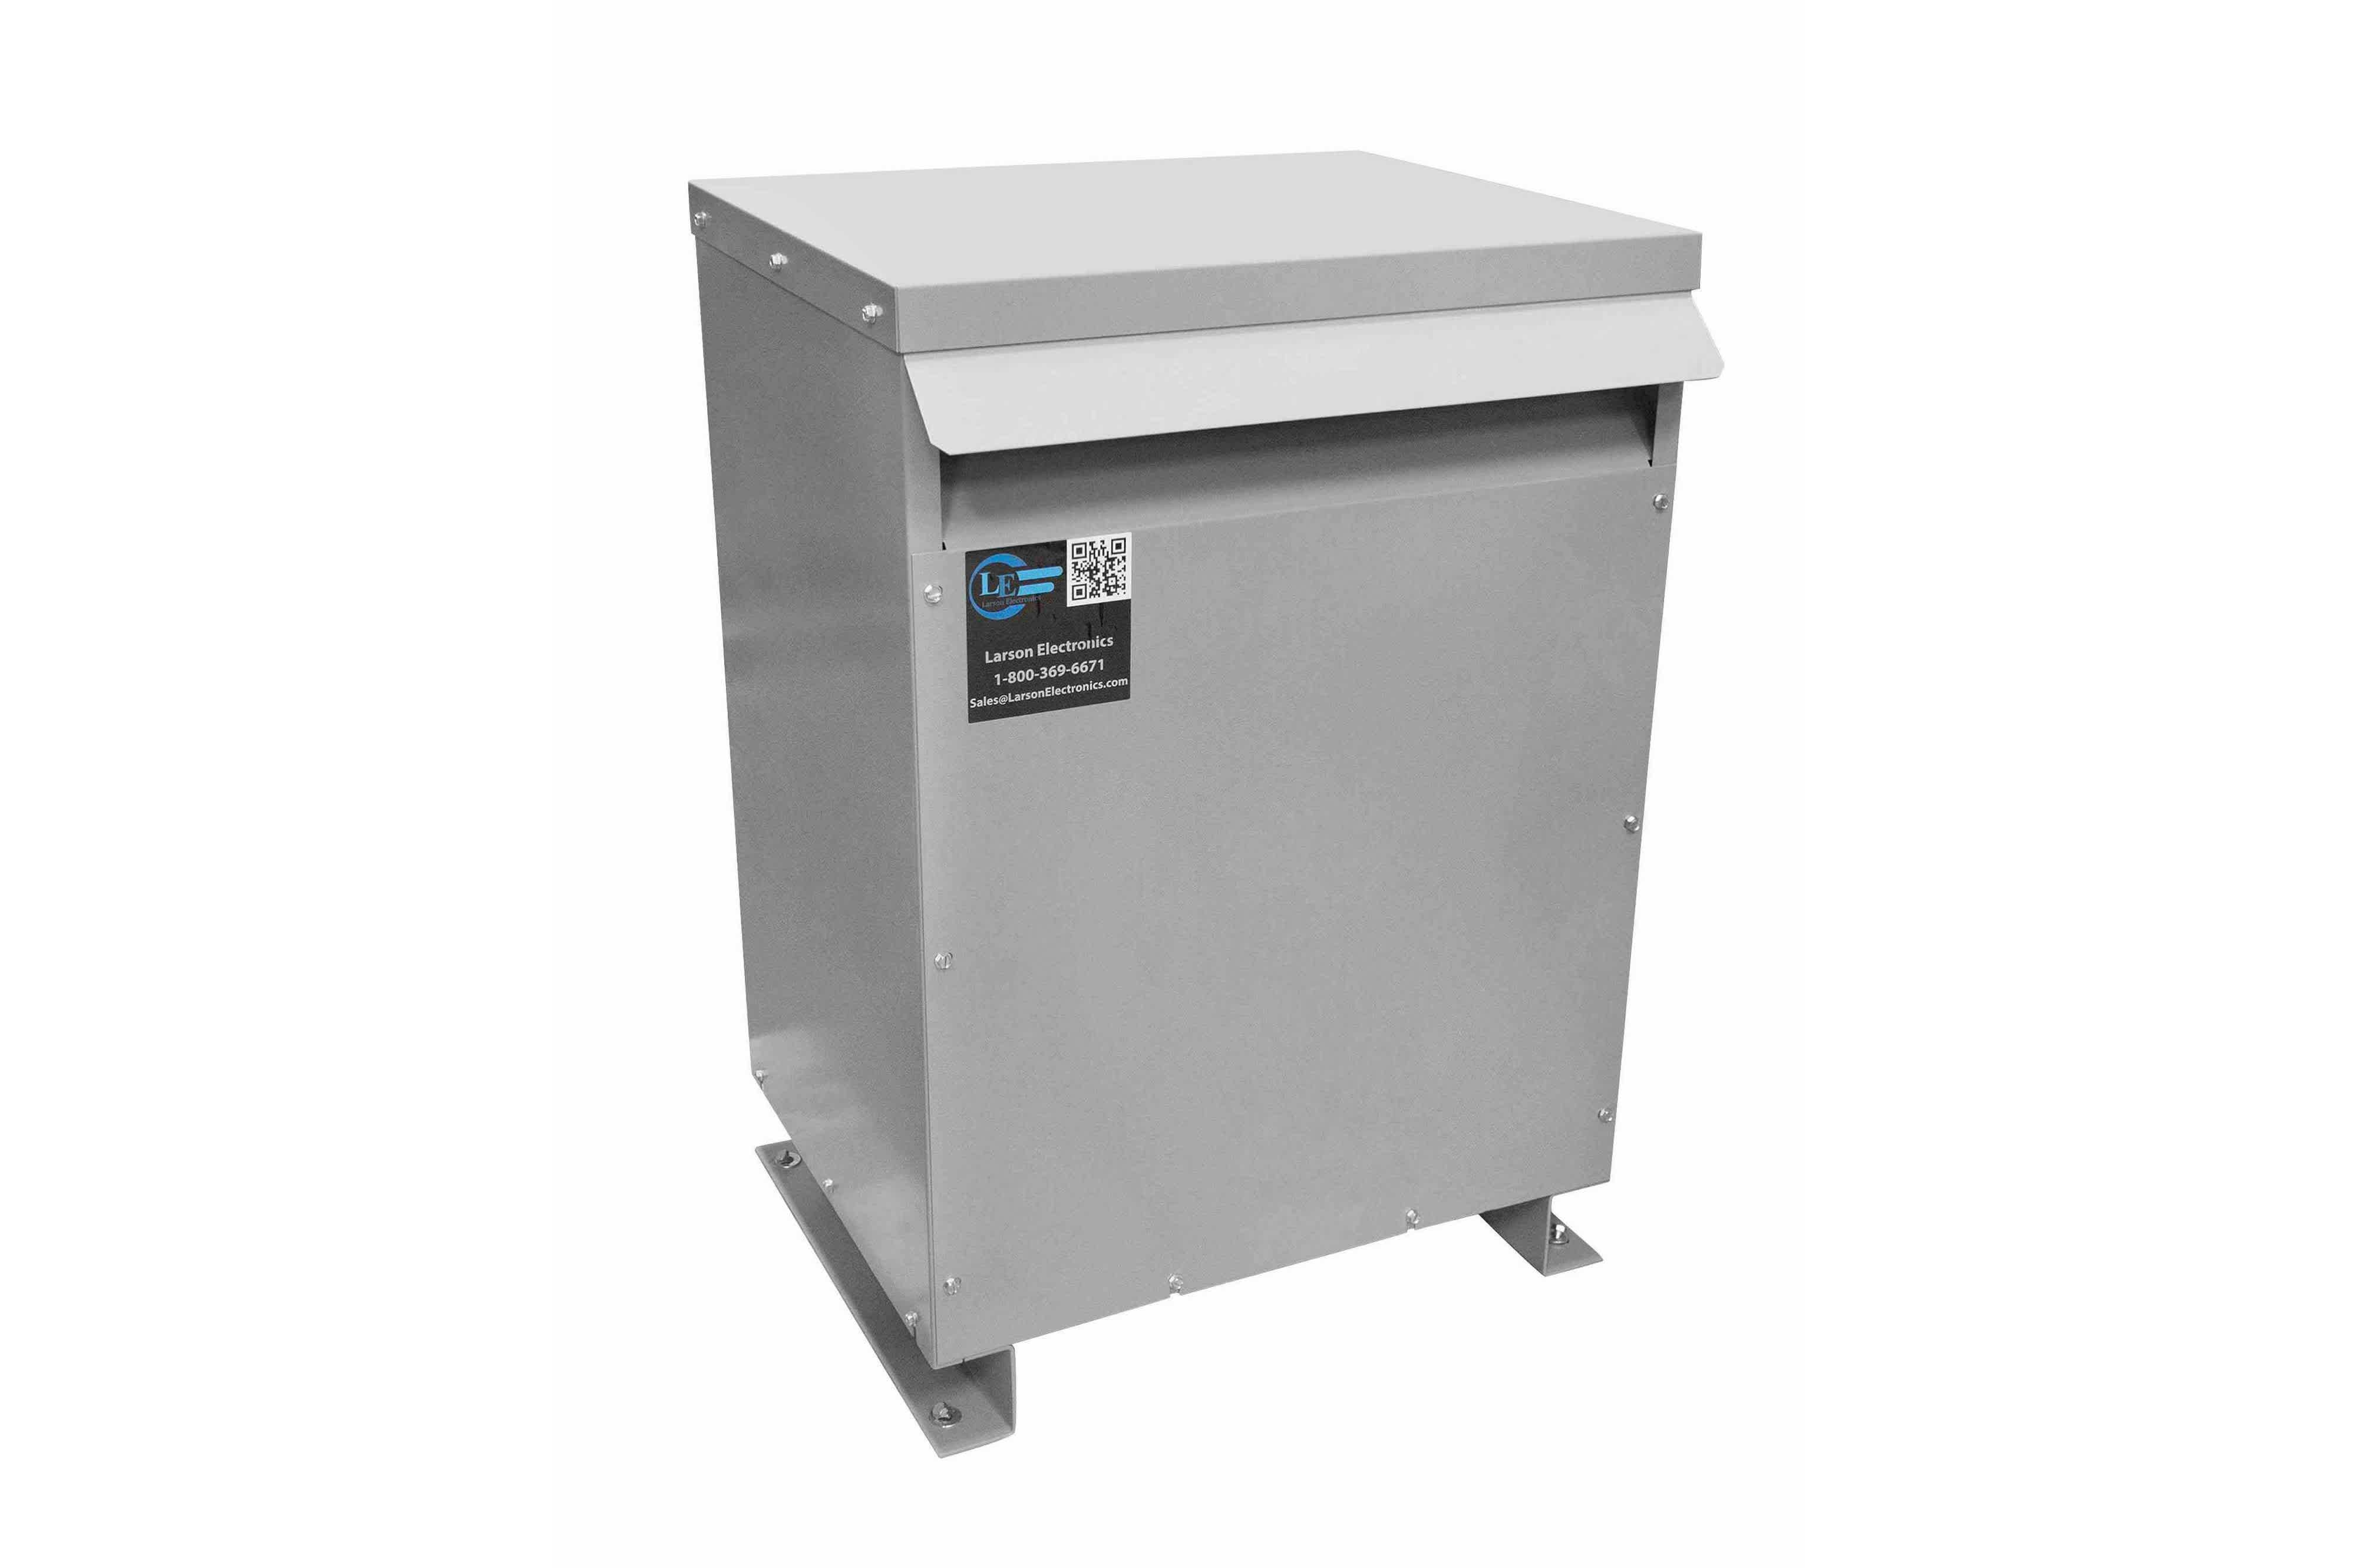 80 kVA 3PH Isolation Transformer, 400V Wye Primary, 208V Delta Secondary, N3R, Ventilated, 60 Hz